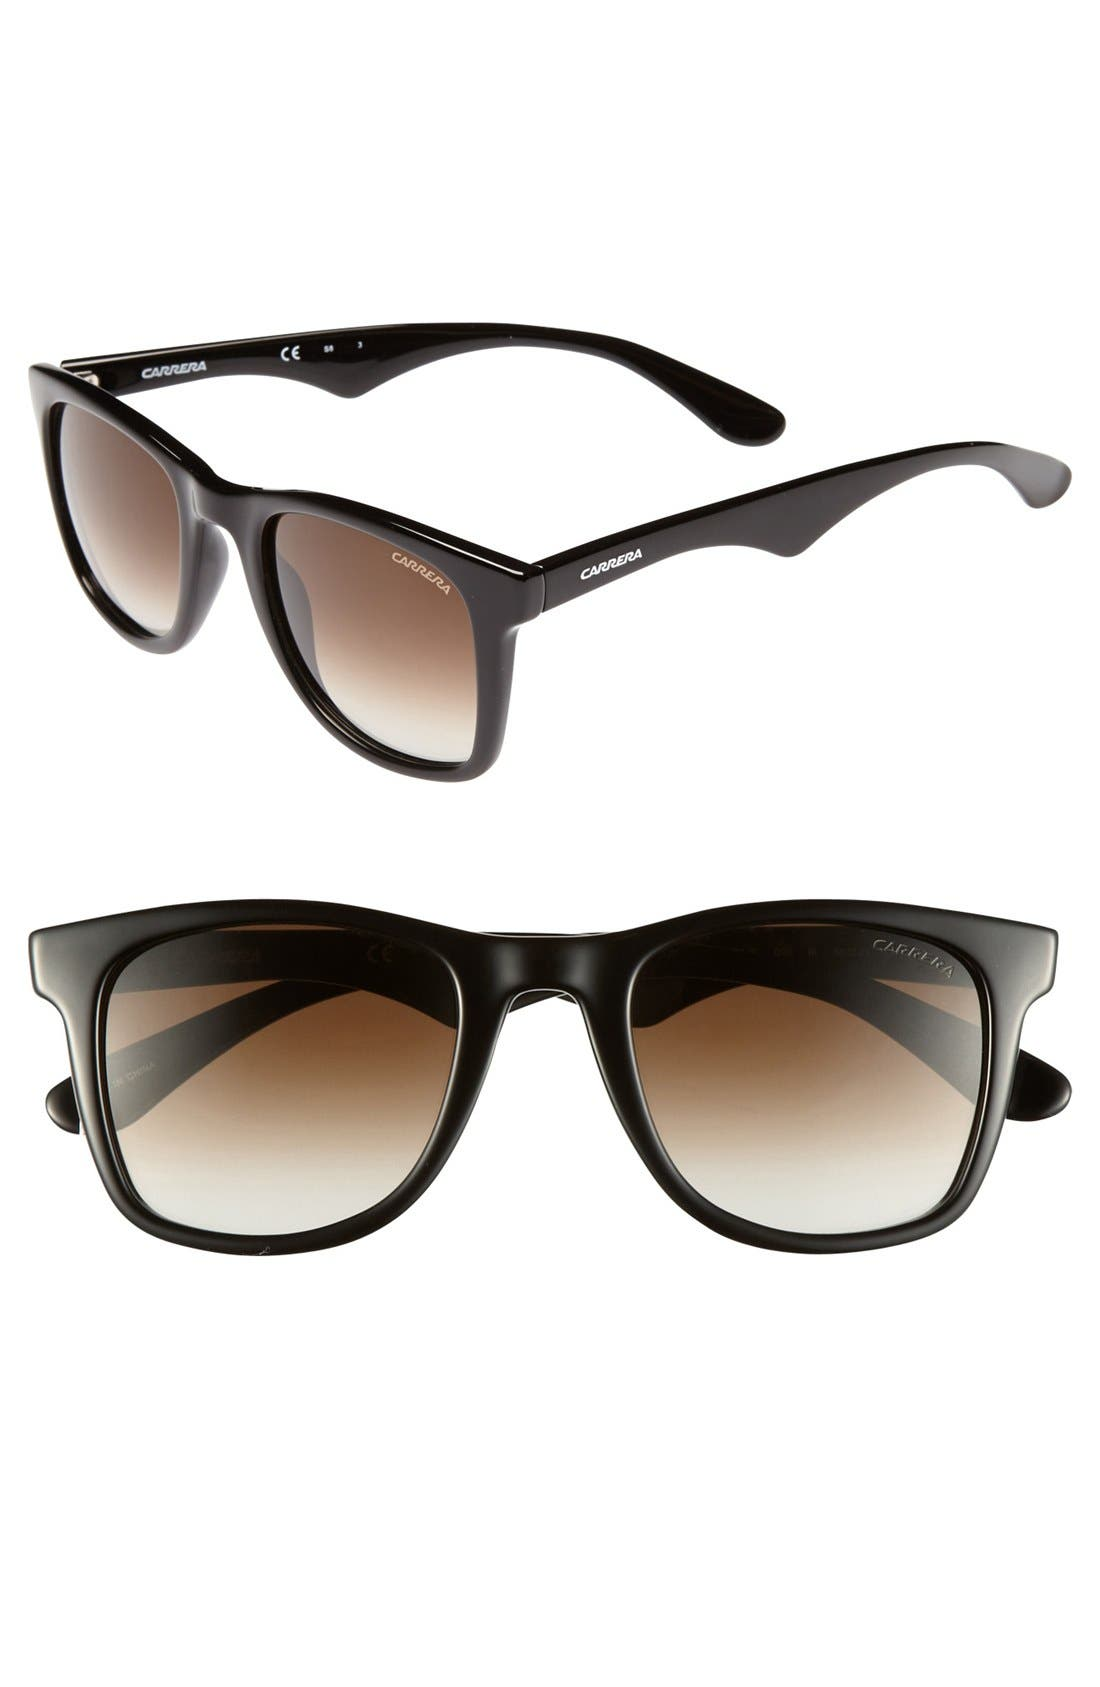 Main Image - Carrera Eyewear 50mm Sunglasses